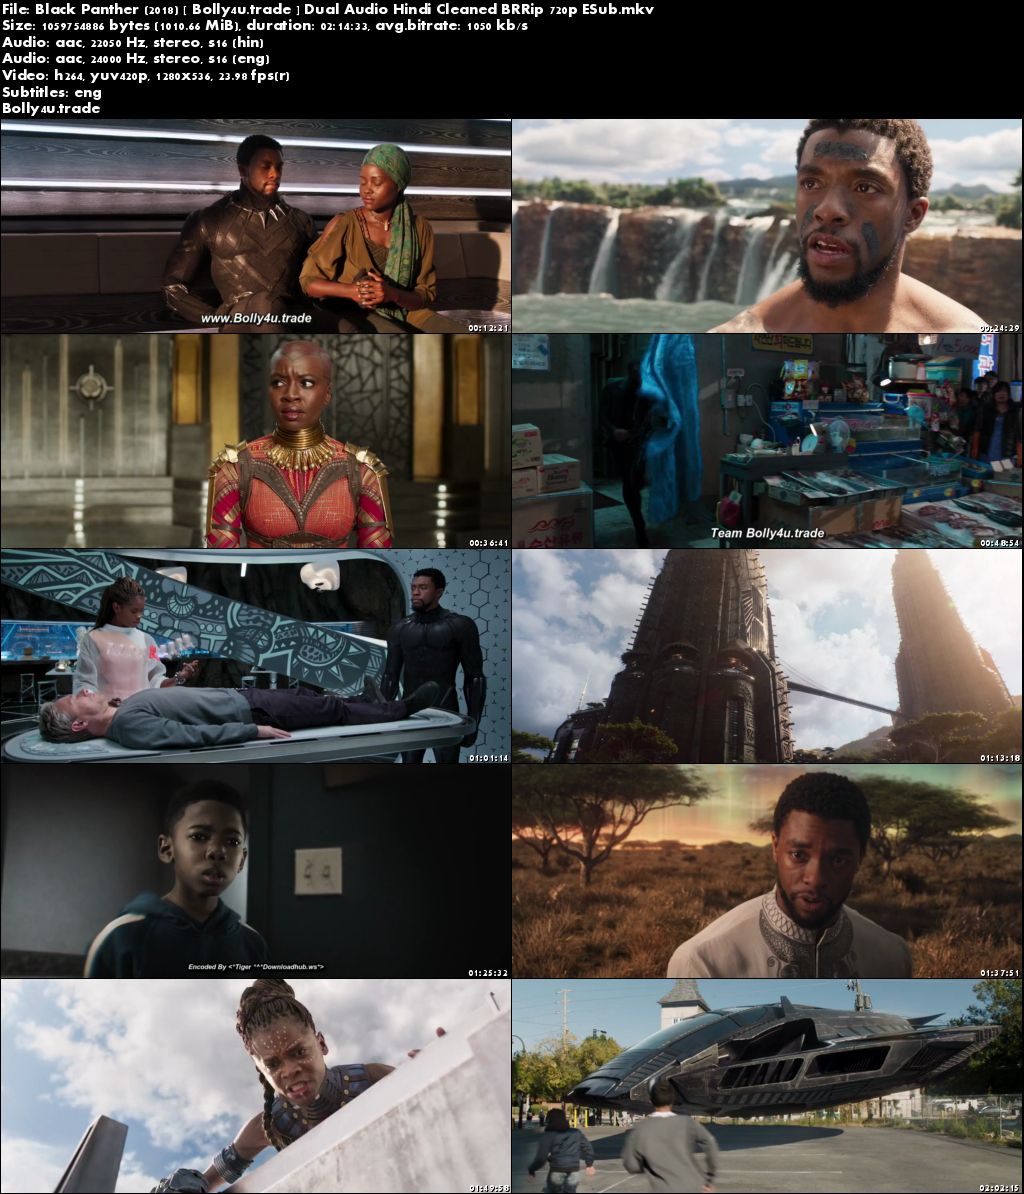 Black Panther 2018 BRRip 999MB Hindi Dual Audio 720p ESub Download